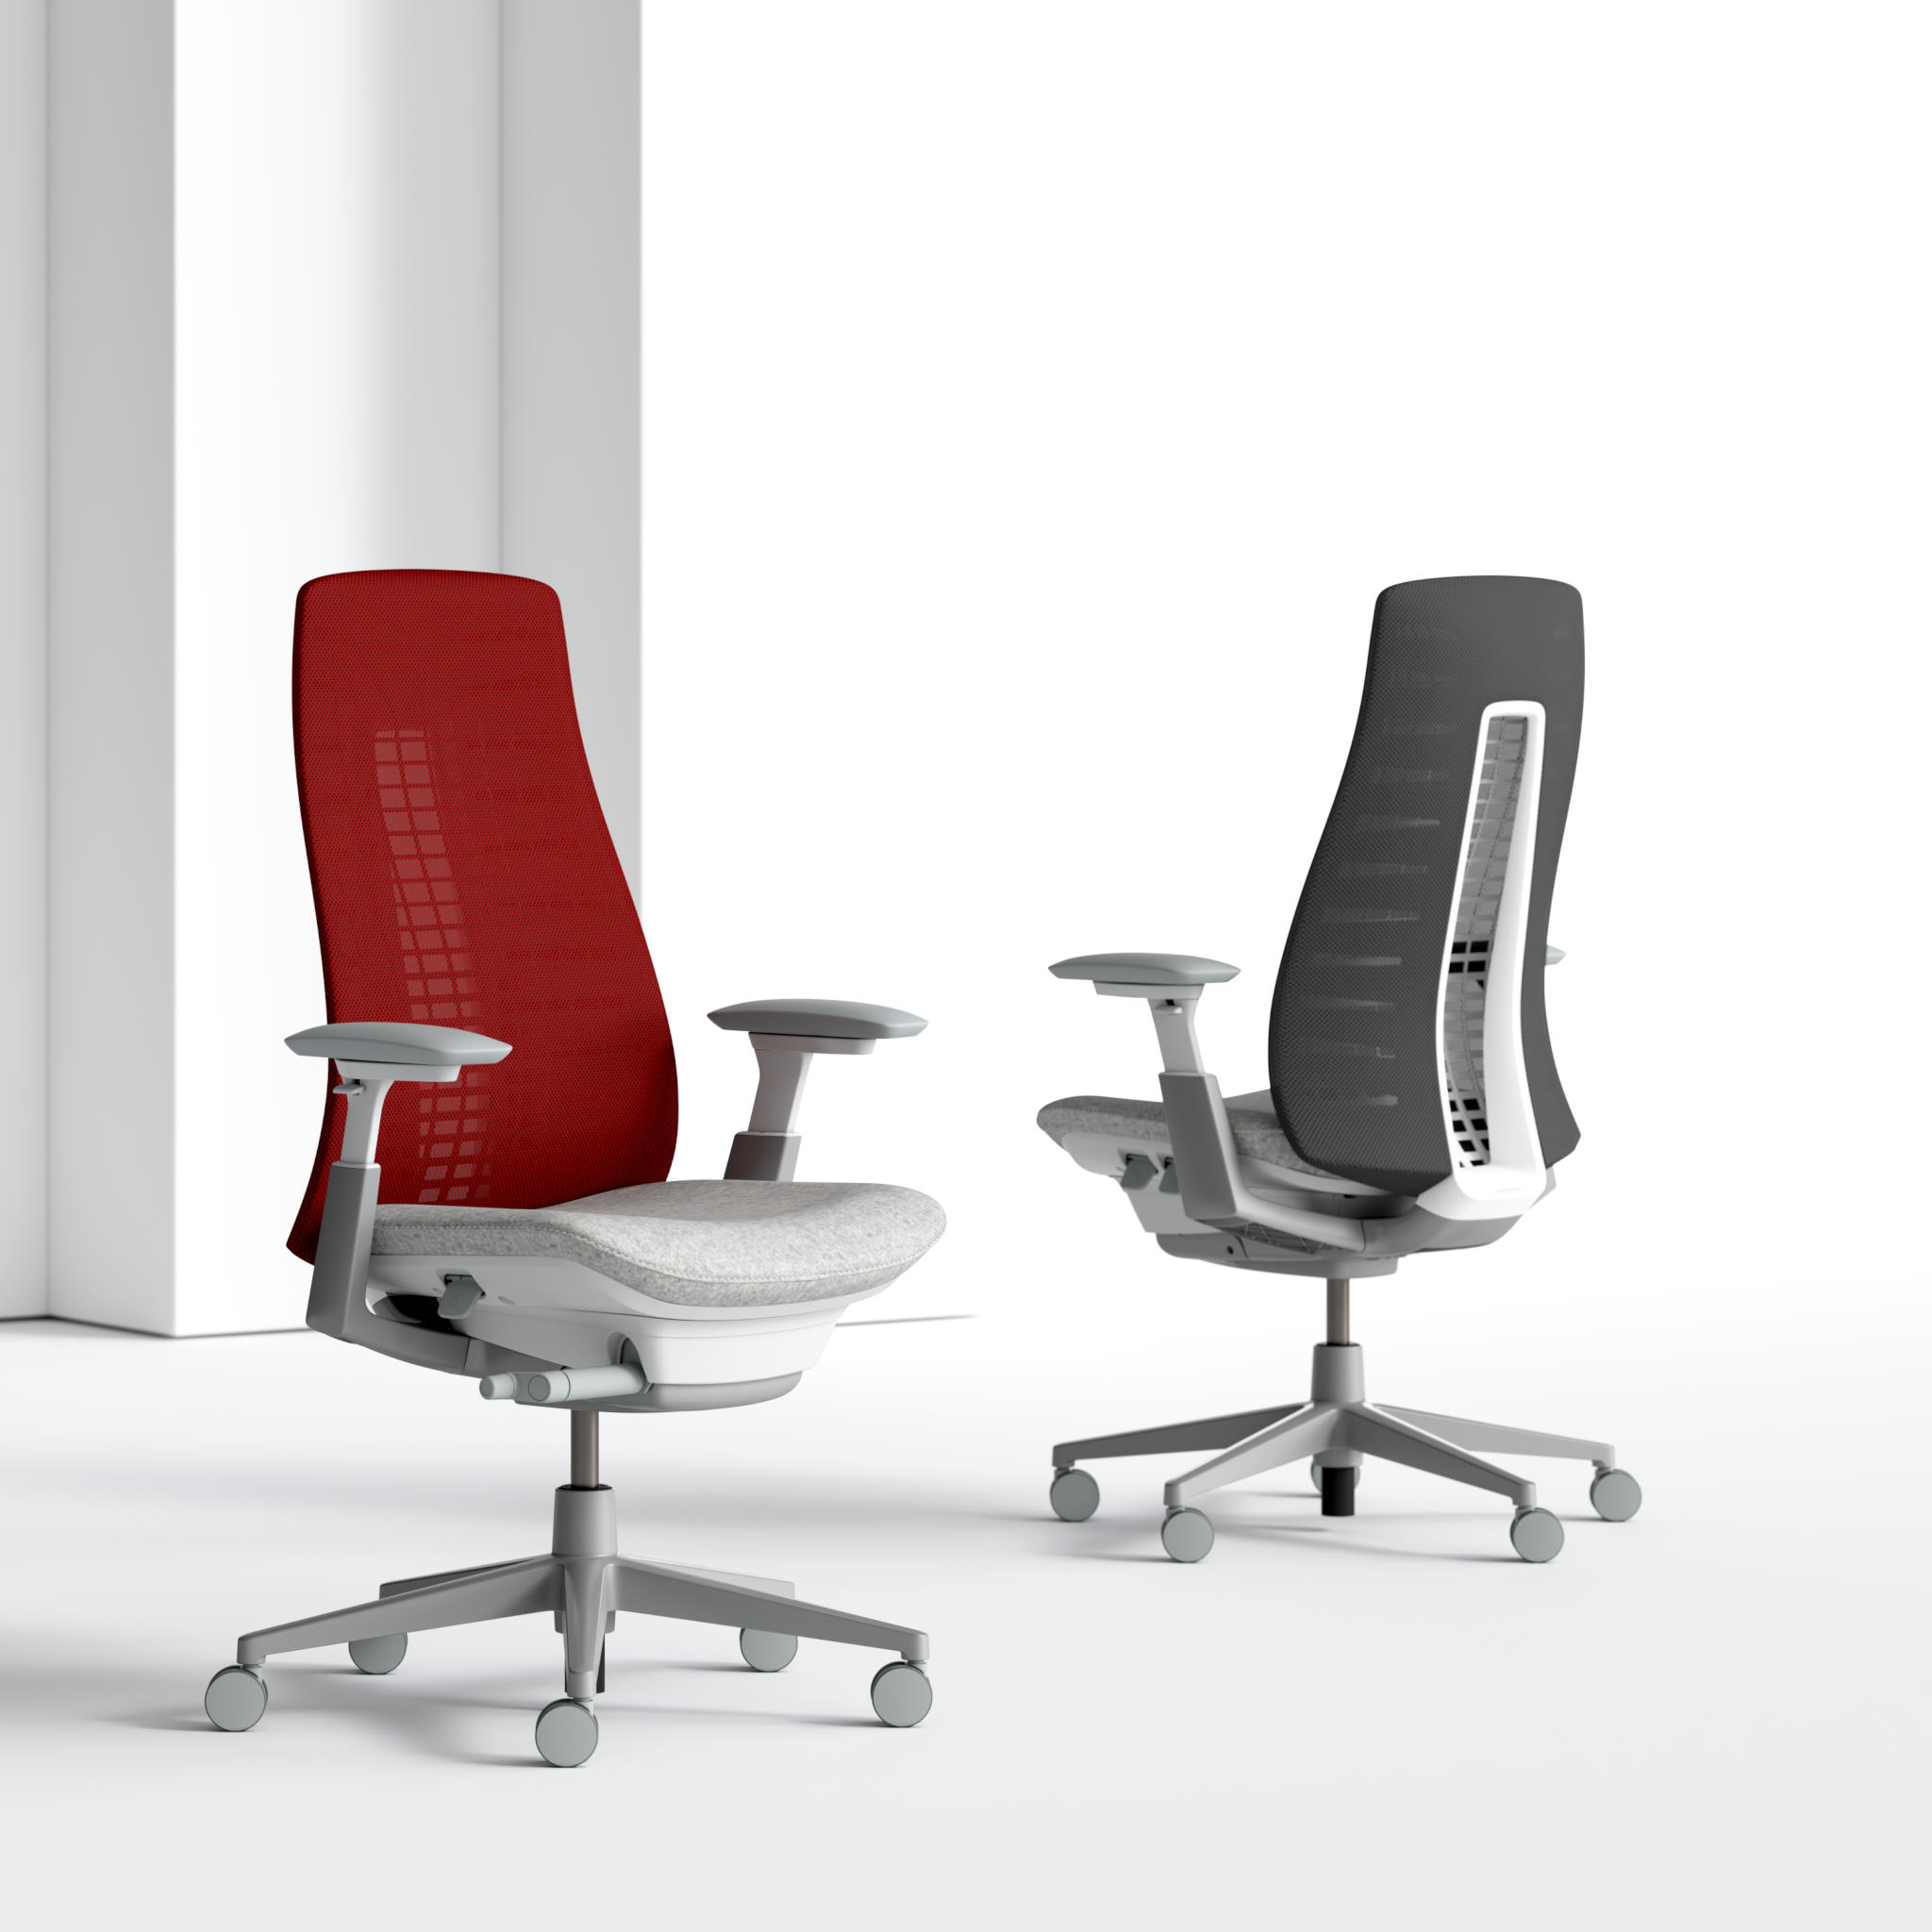 3D Animation of Desk Chairs